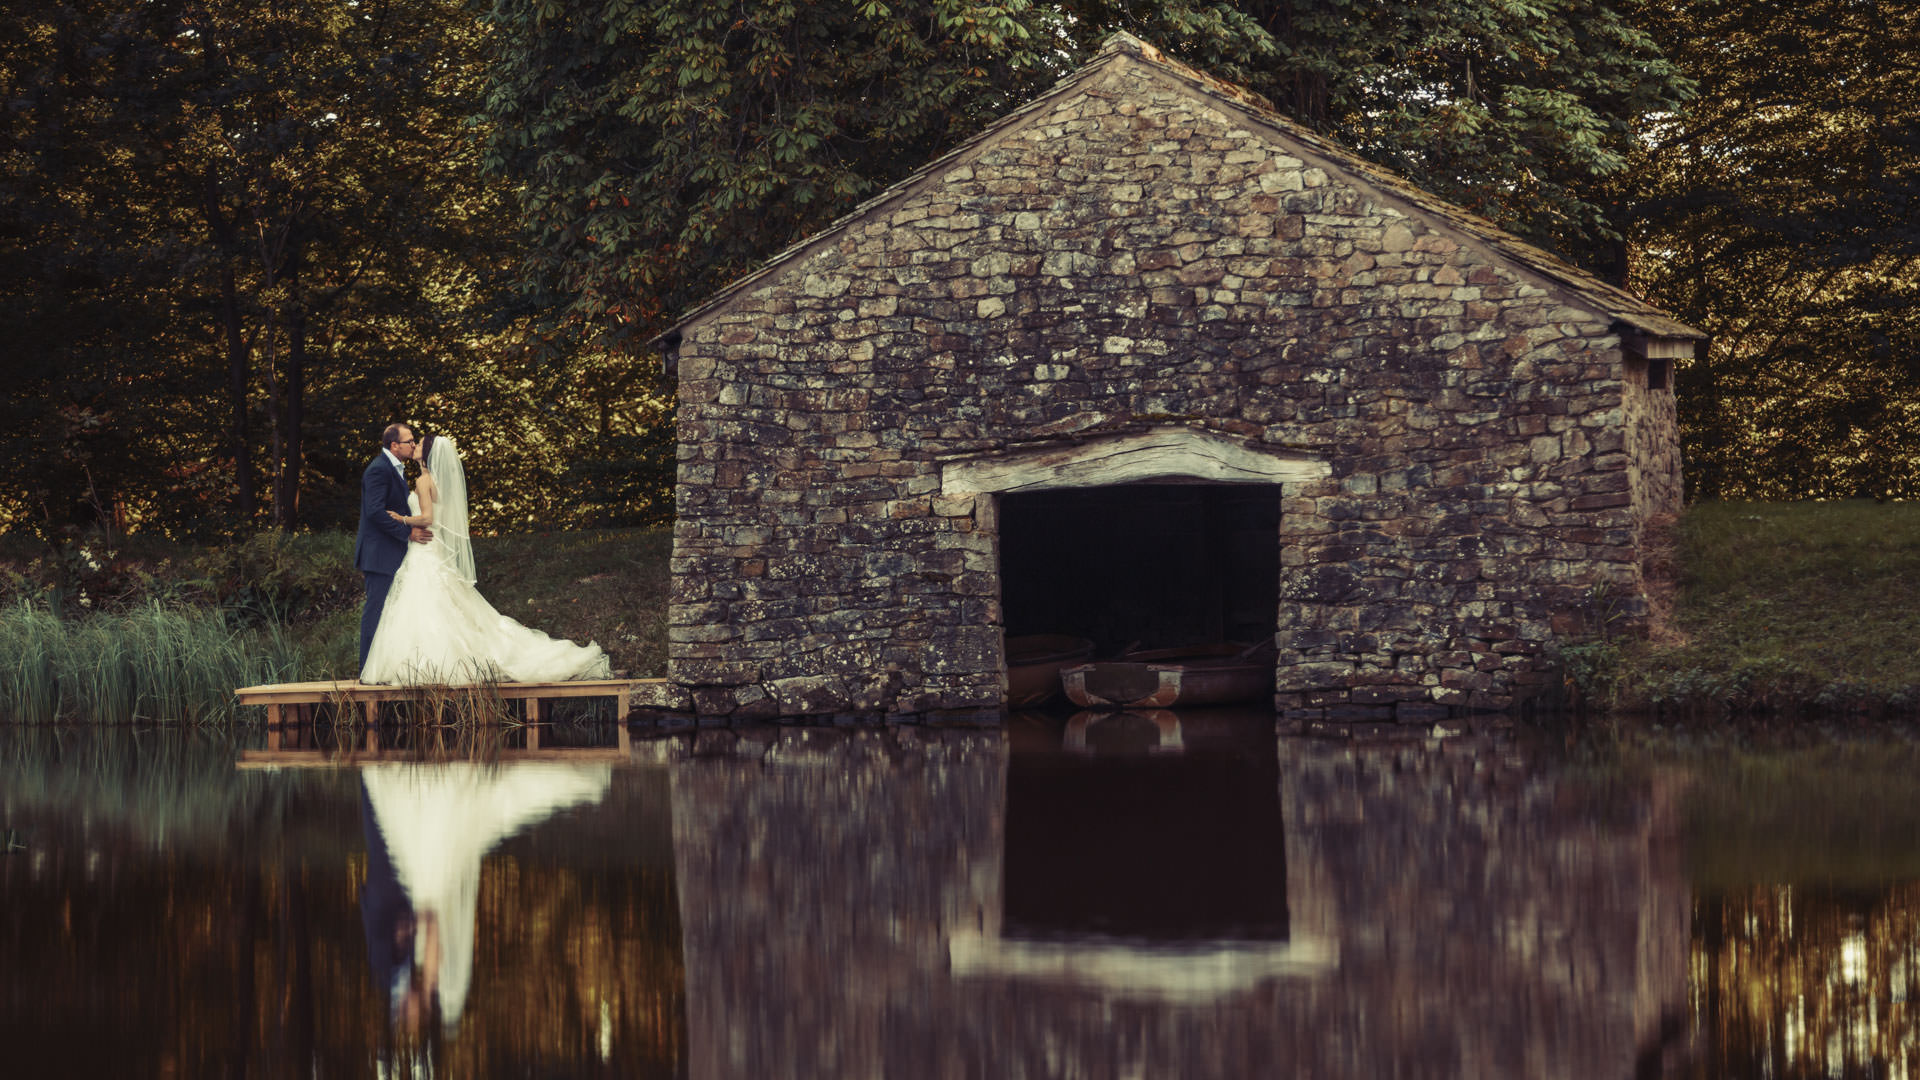 Stunning location based wedding photography by Tierney Photography.